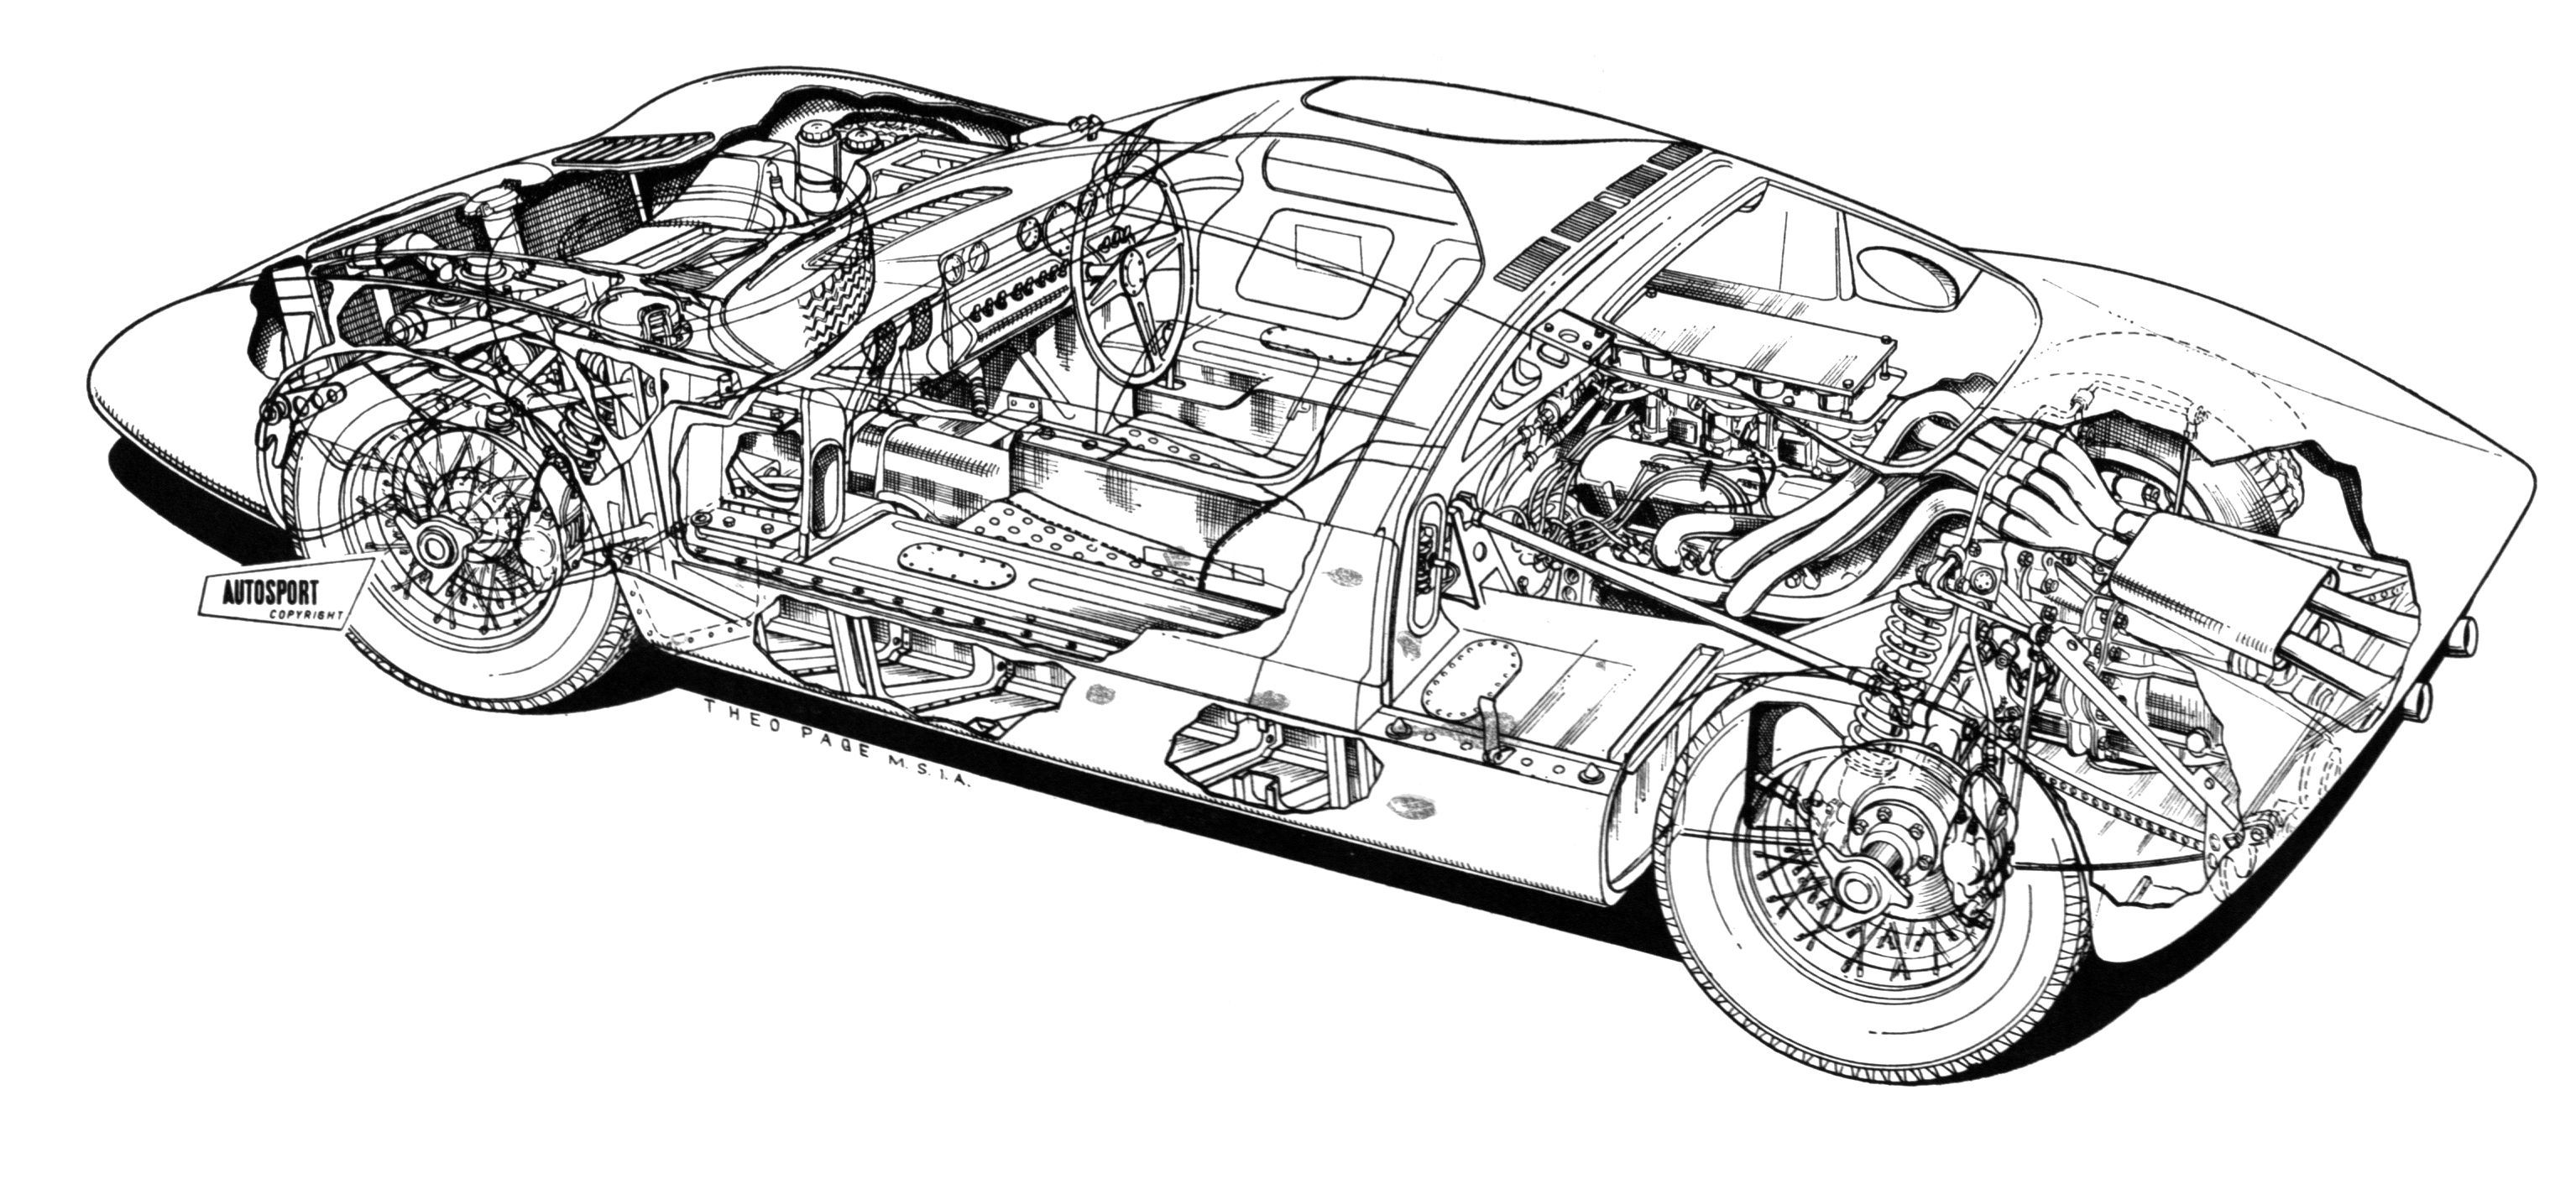 Pin By Colin Partlett On Cutaway Drawings